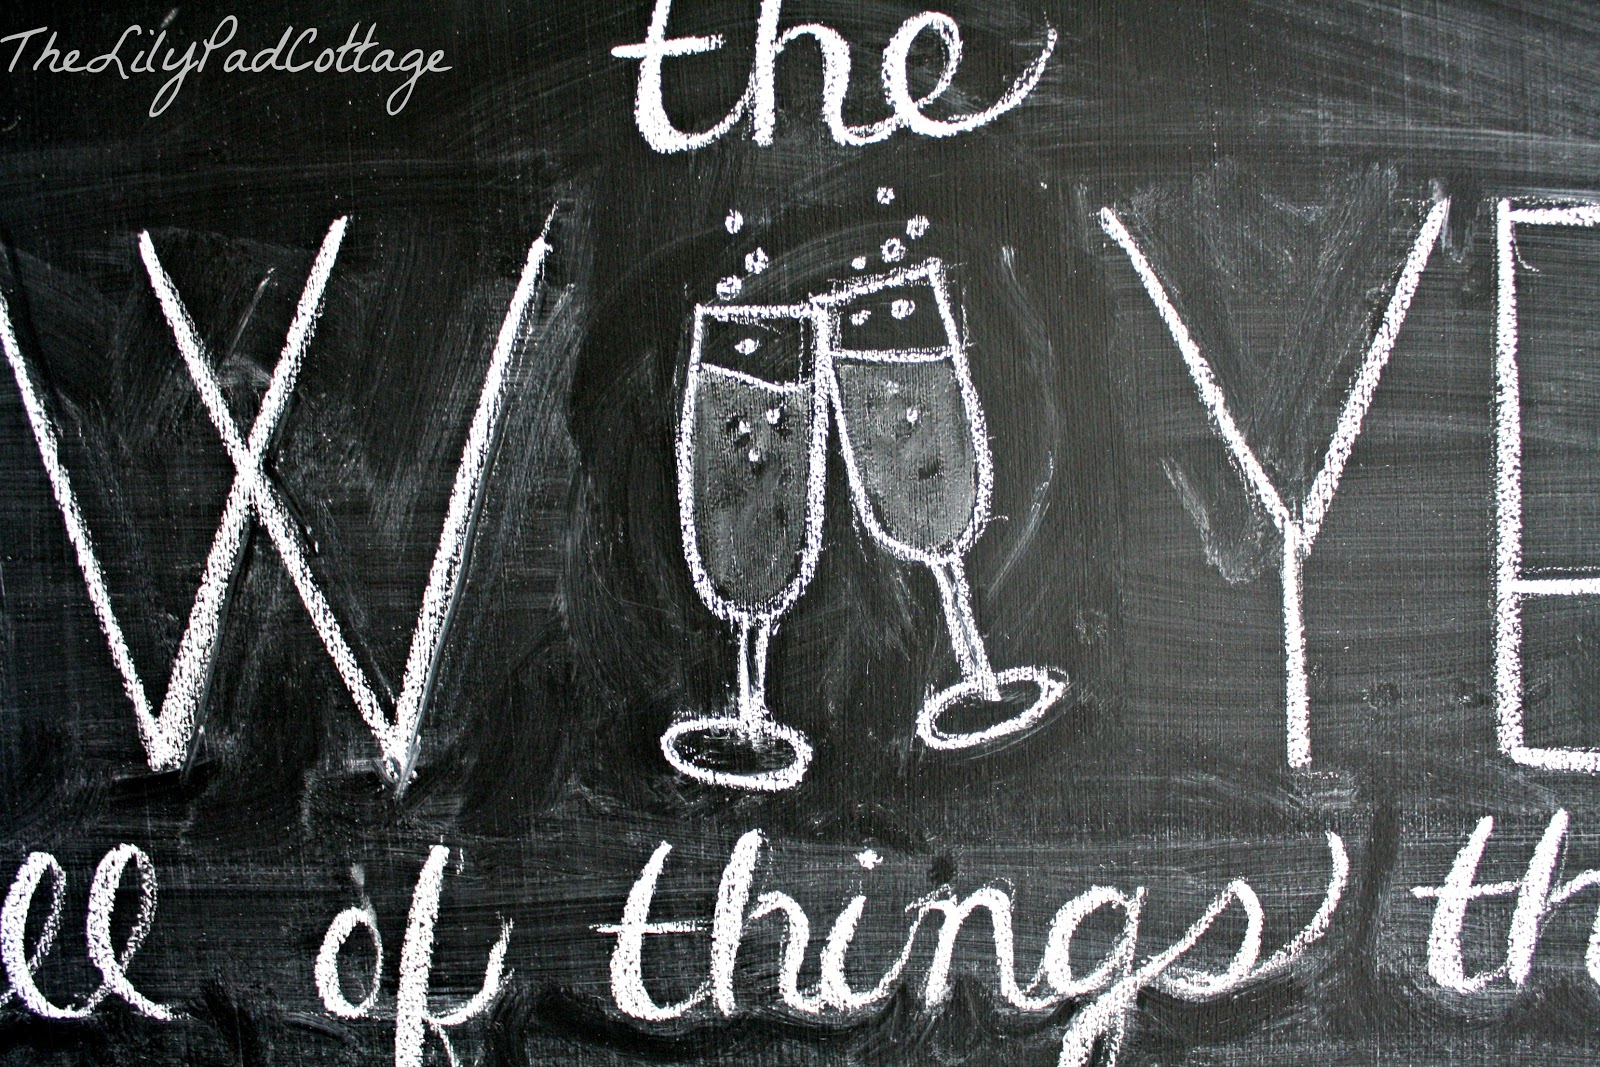 10 chalkboard tips and tricks - Chalkboard Designs Ideas